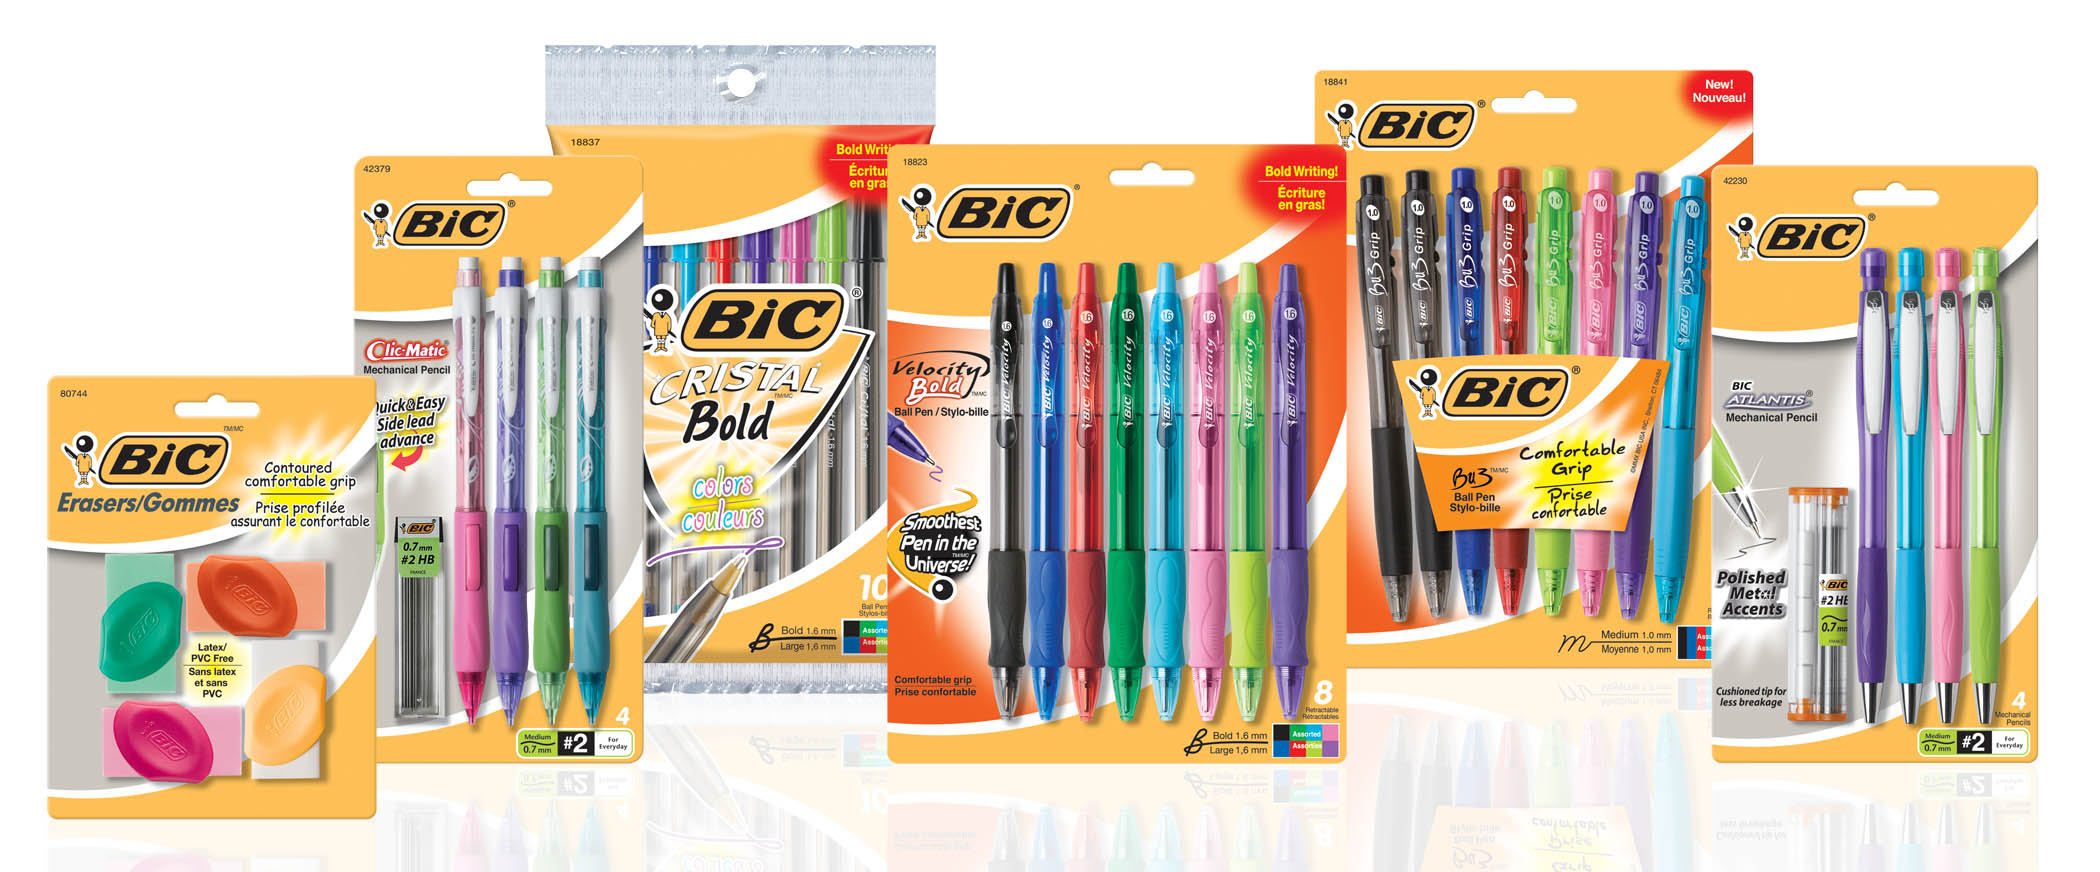 New Coupon – Save $1.50 on any TWO (2) BIC Stationery products